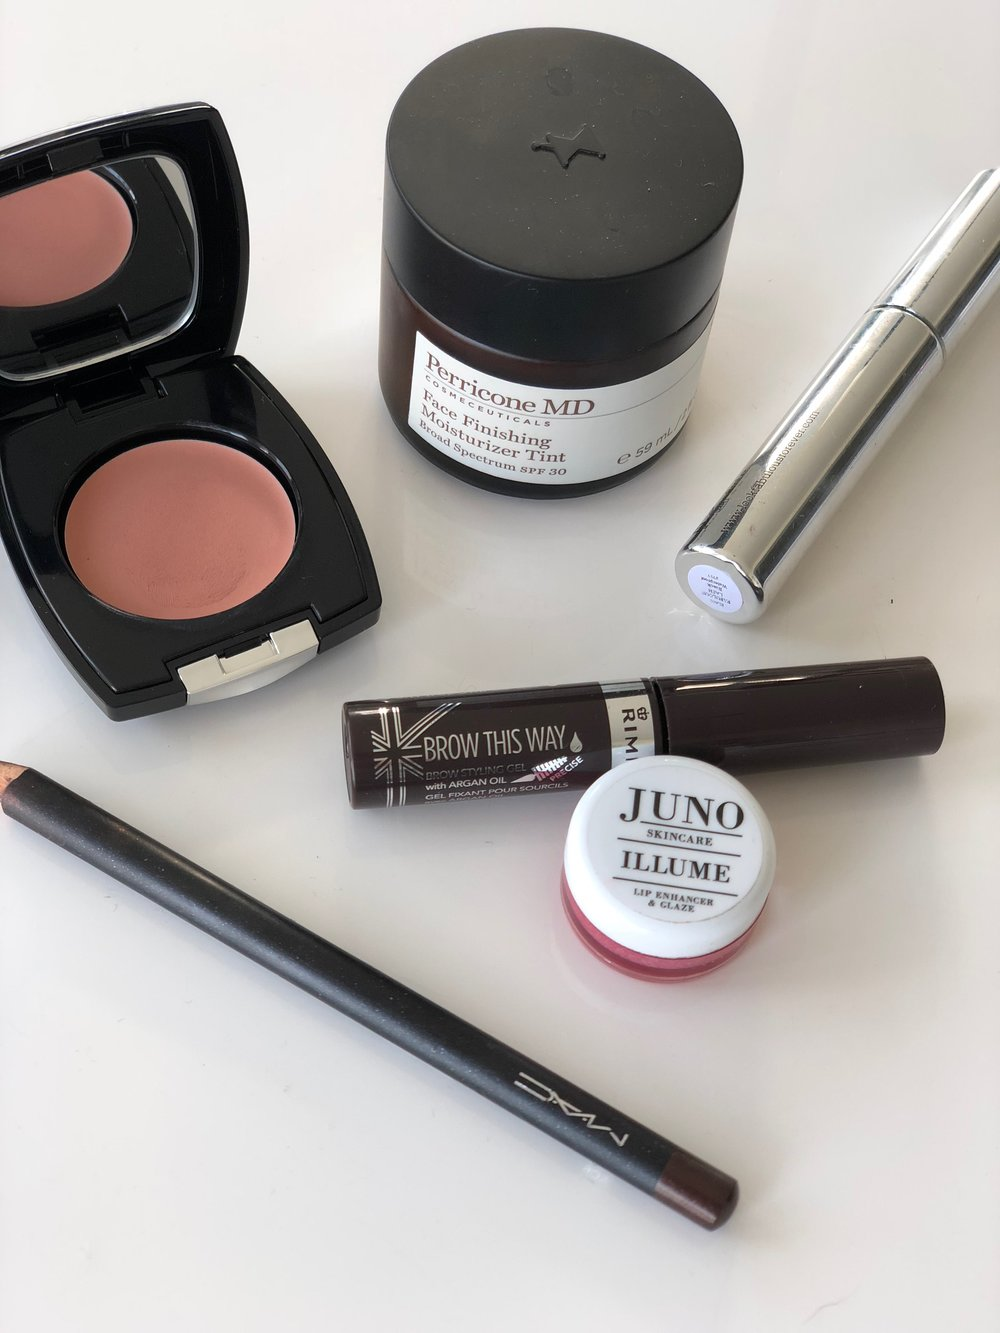 My favourite products for a very quick, light makeup.